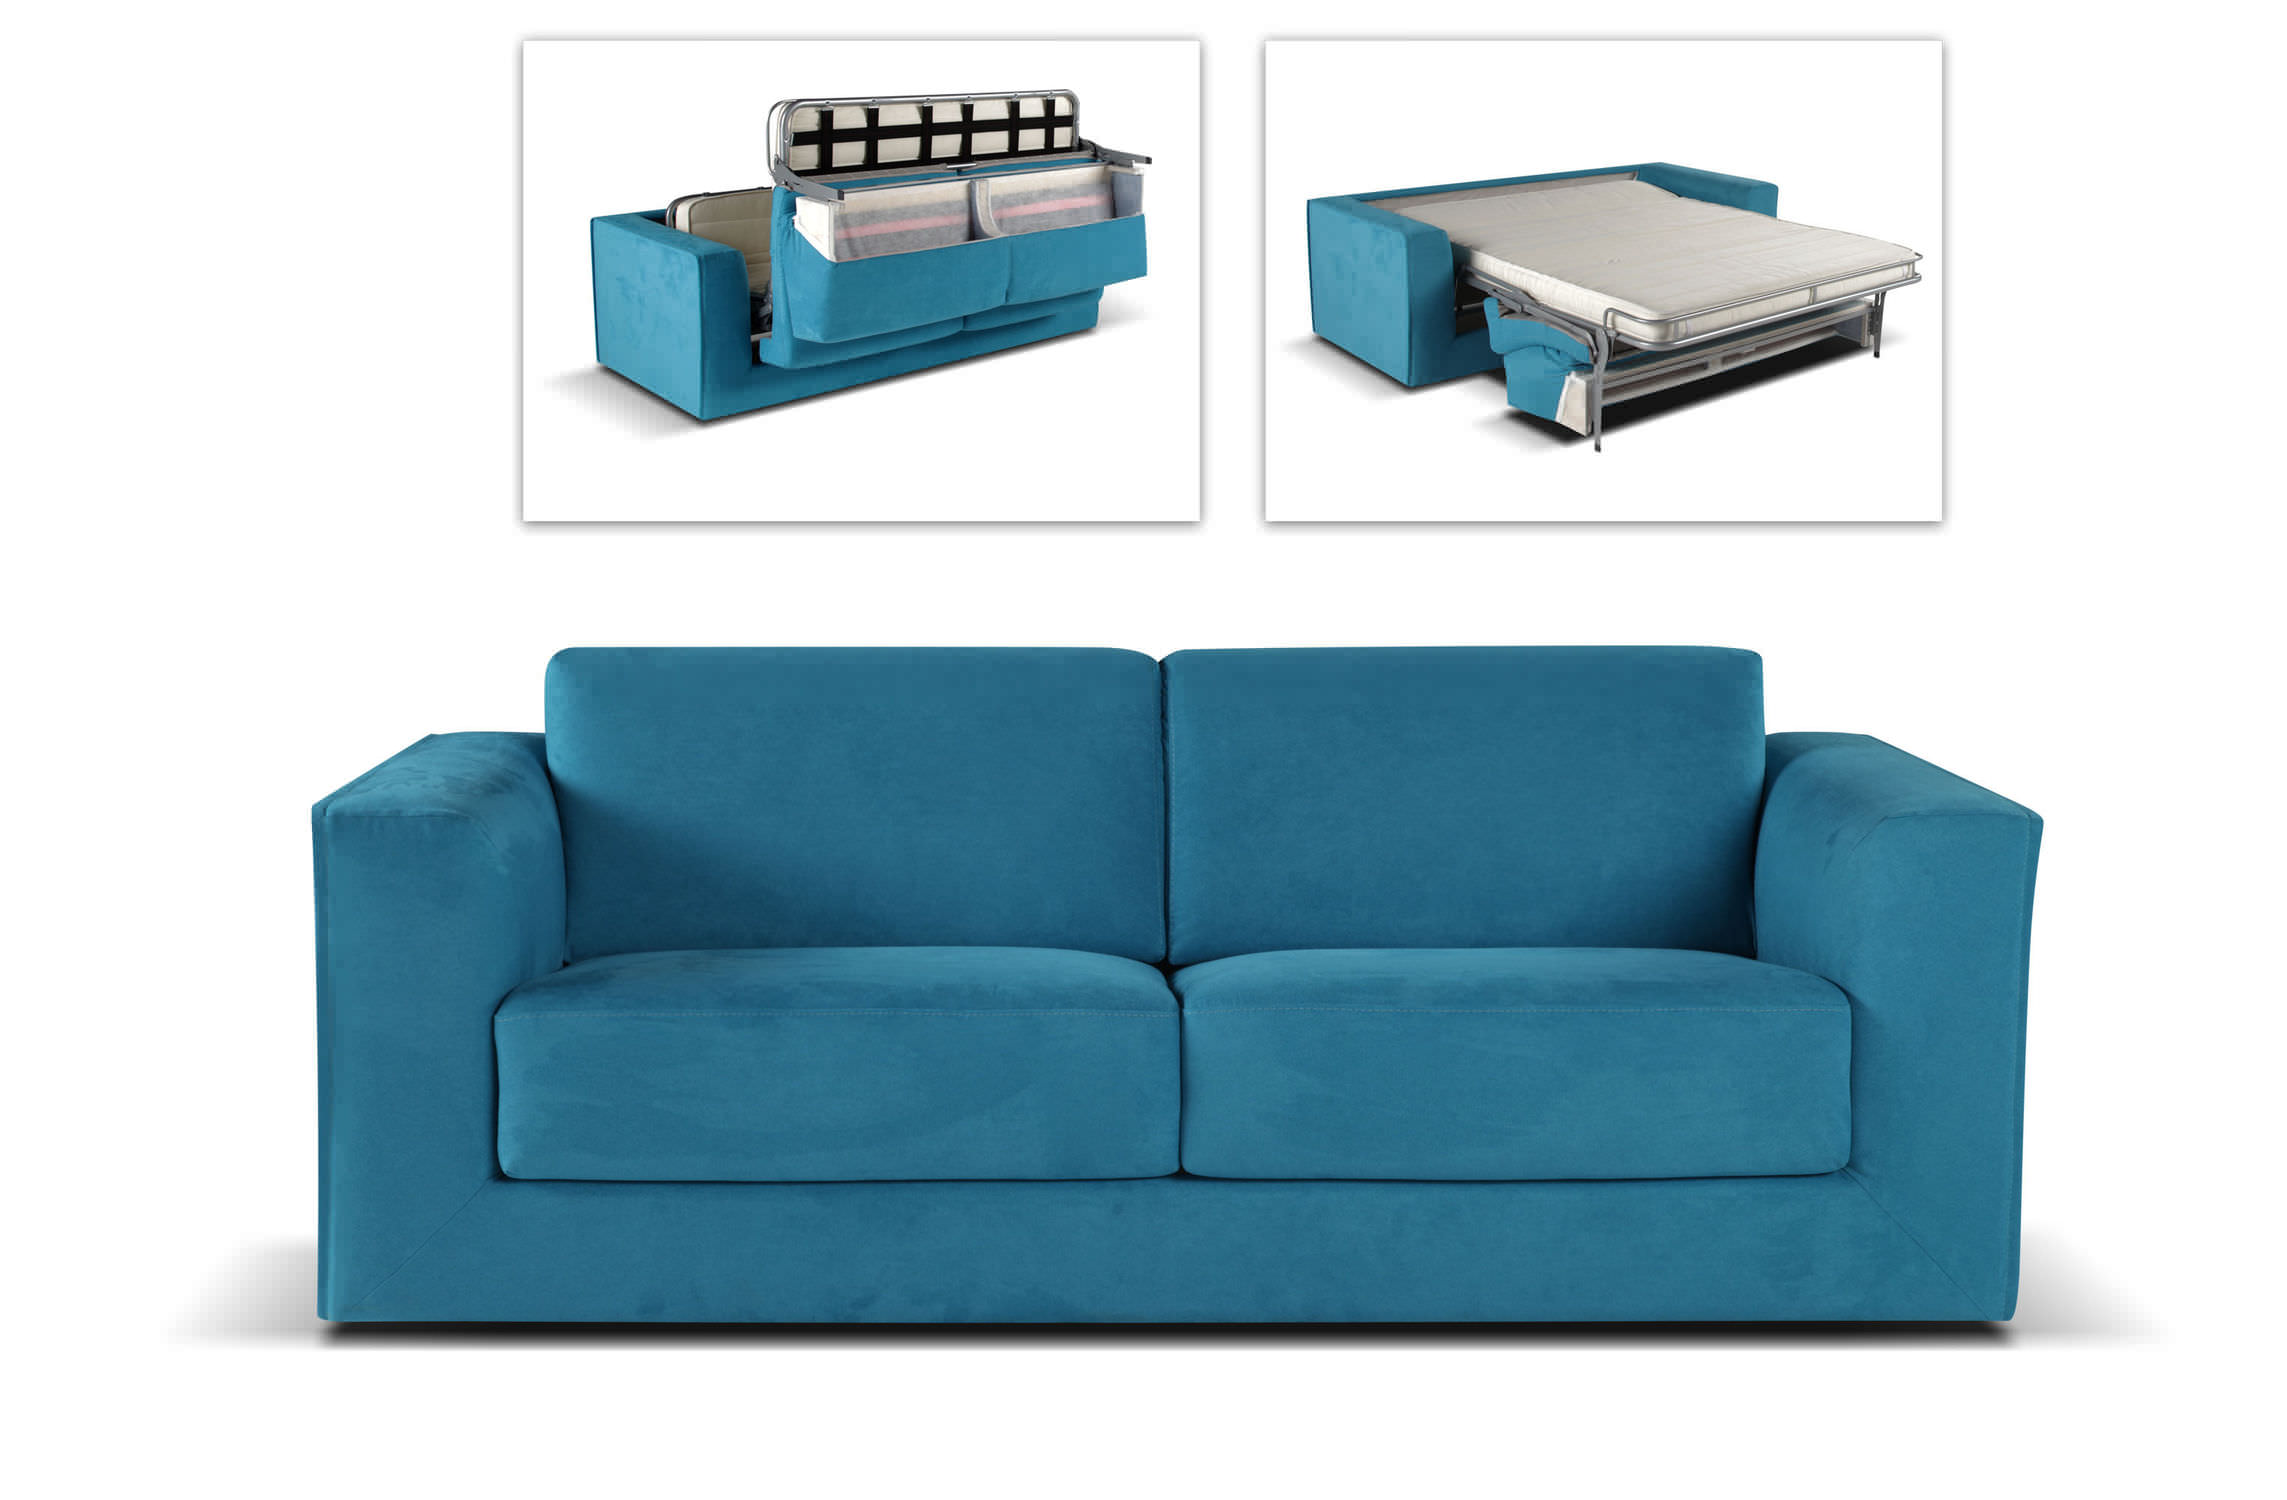 Couch Furniture Minimize Your Interior With Couch That Turn Into Bed For